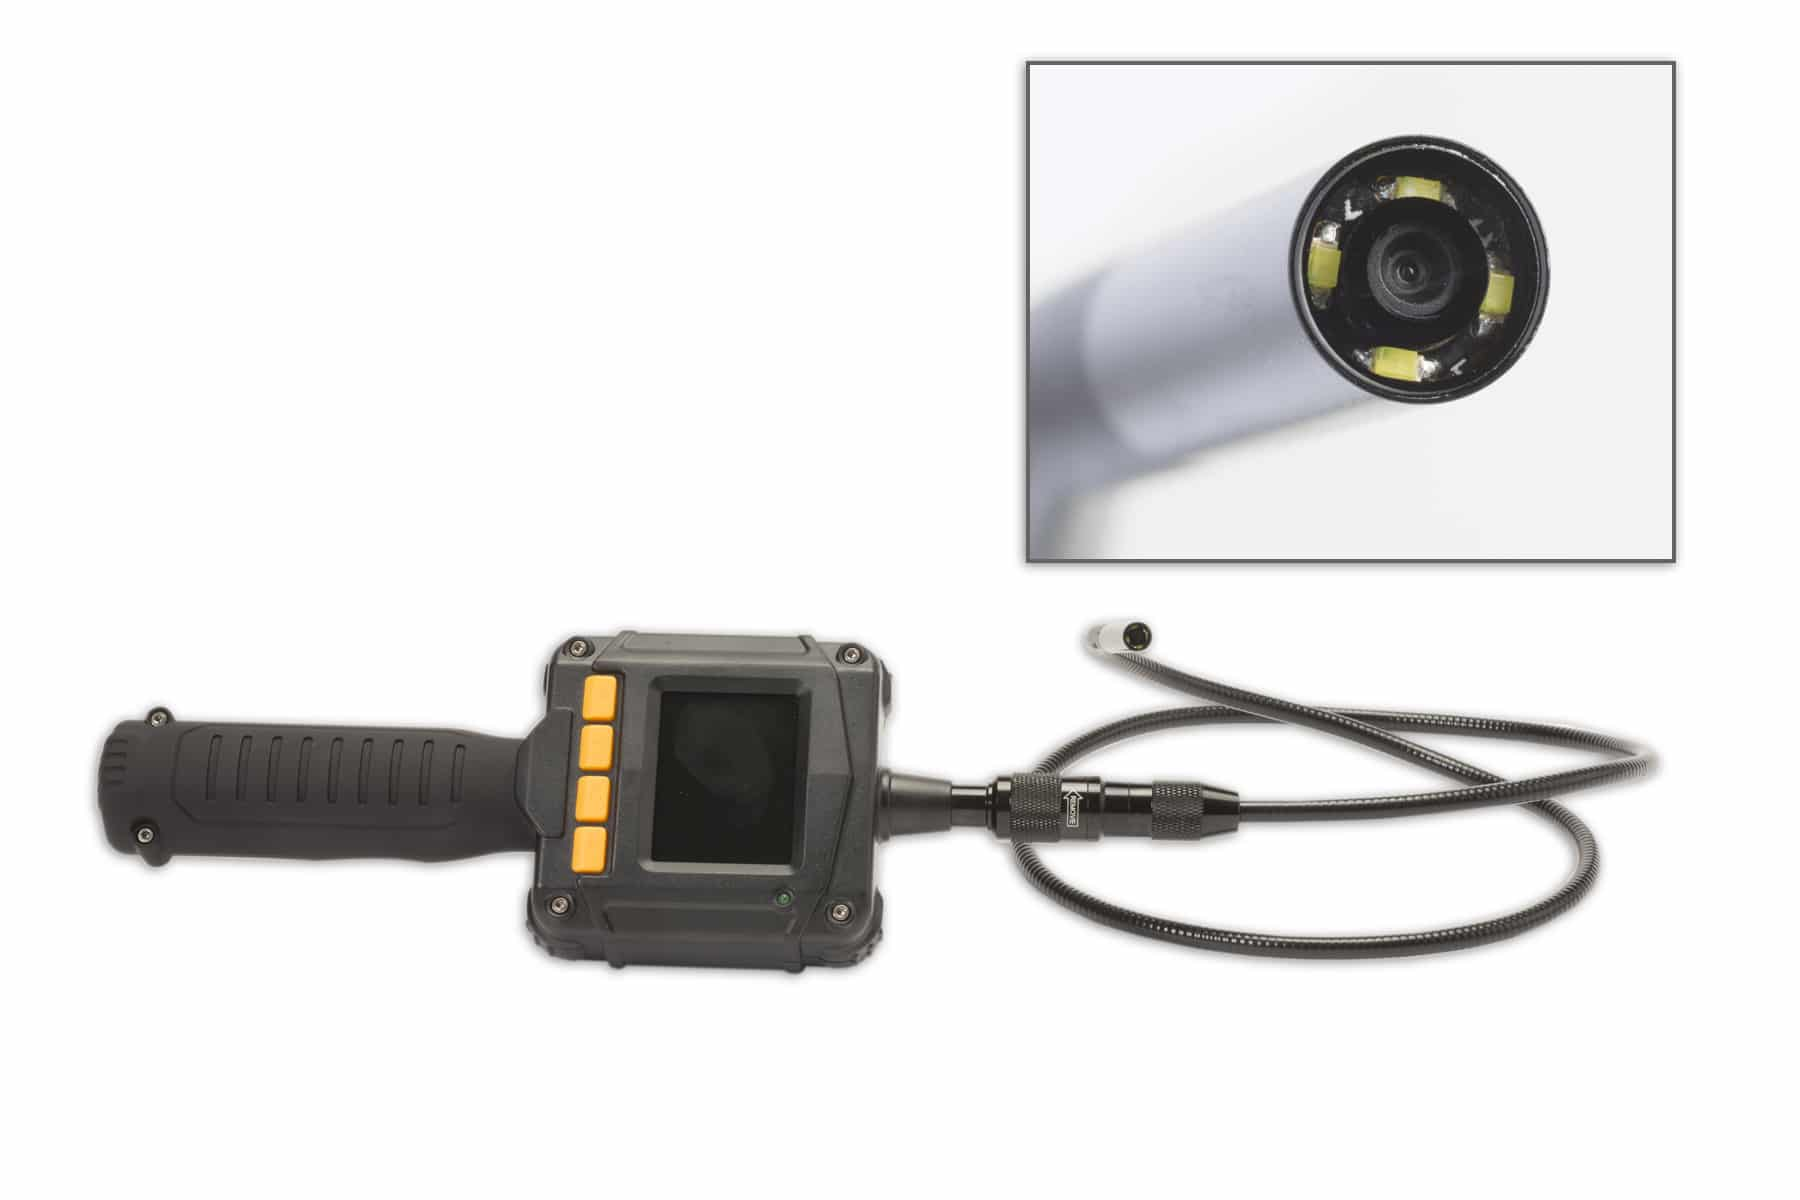 The small hand held video camera from LeakTronics